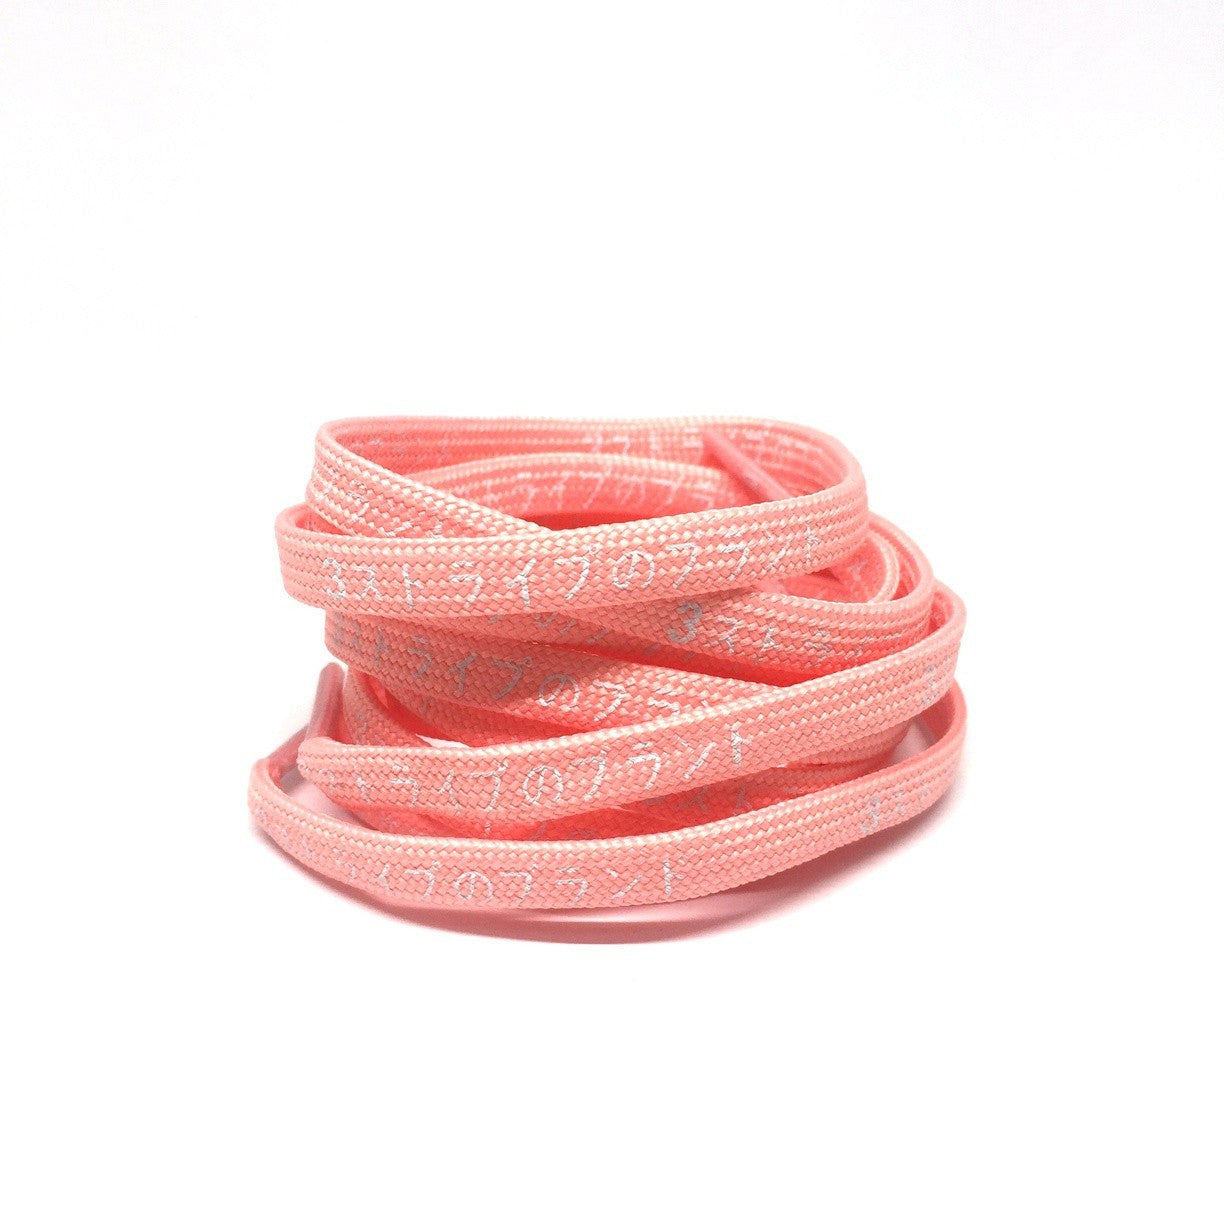 0291322ba6c24 Flat Thin - NMD   Ultra Boost Japanese Katakana Flat Laces - Salmon Pink  With White